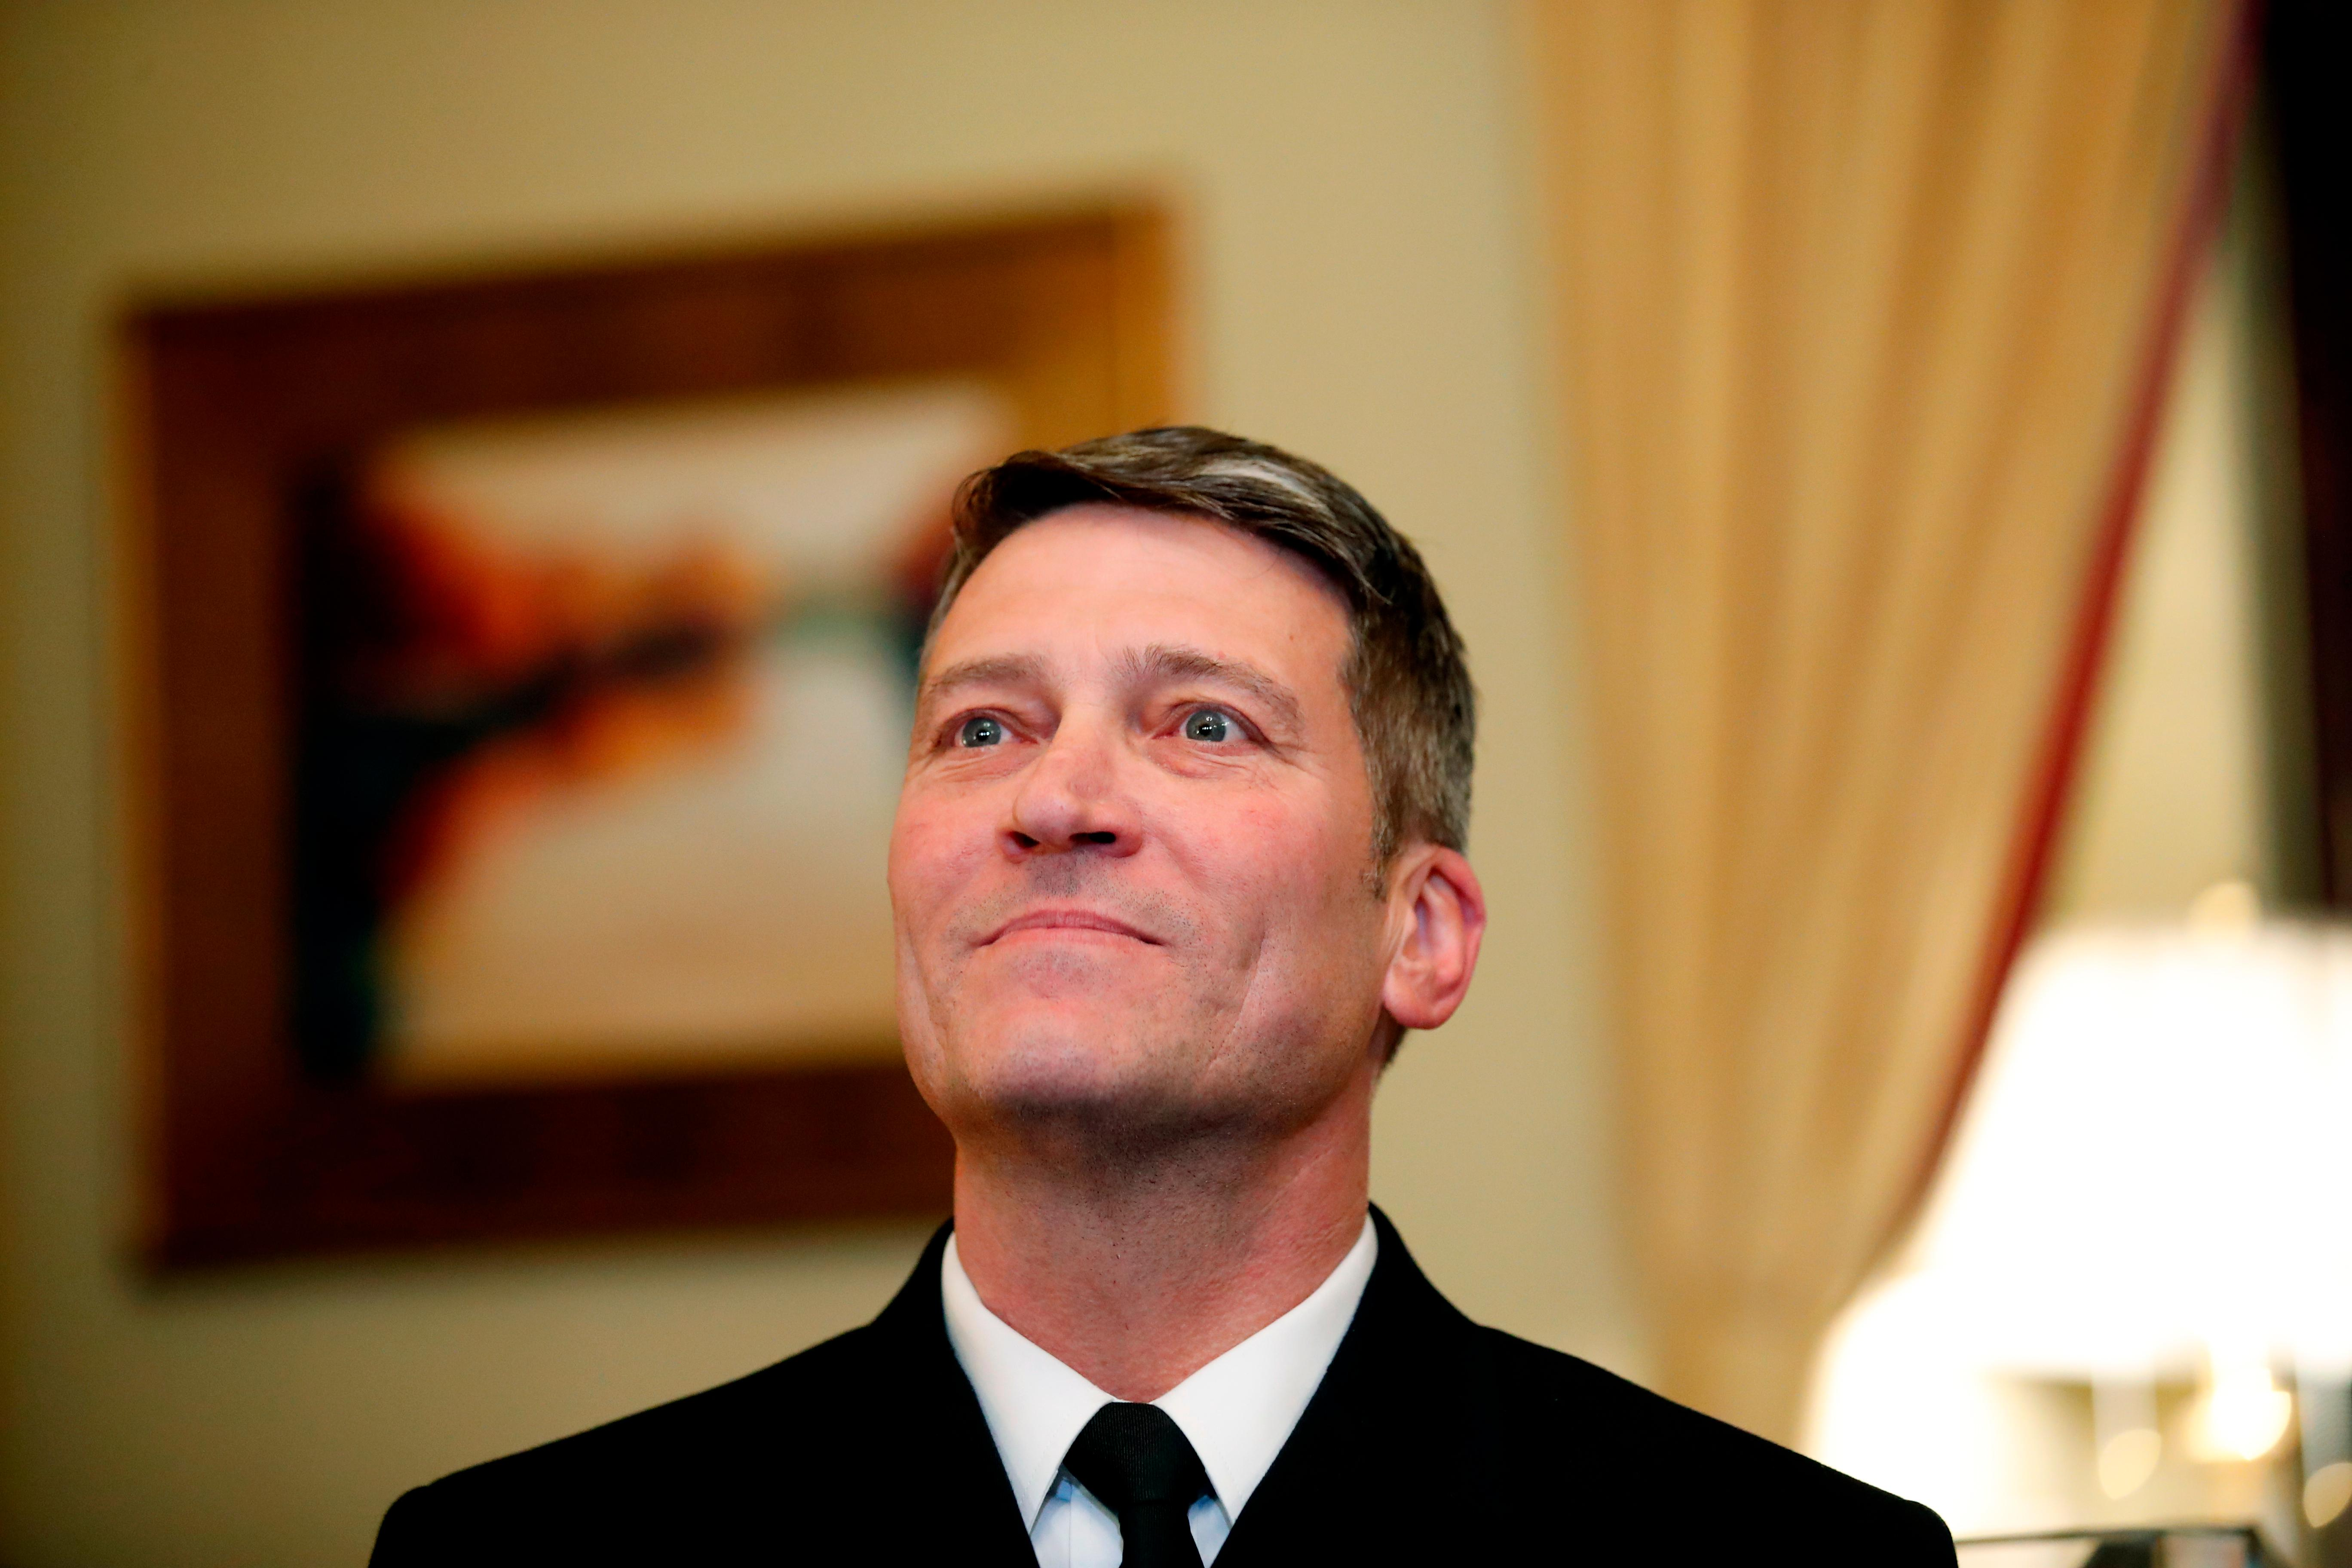 In this April 16, 2018, photo, U.S. Navy Rear Adm. Ronny Jackson, M.D., sits with Sen. Johnny Isakson, R-Ga., chairman of the Veteran's Affairs Committee, before their meeting on Capitol Hilin Washington. Jackson is President Donald Trump's nominee to be the next Secretary of Veterans Affairs. Now it's Washington's turn to examine Jackson. The doctor to Presidents George W. Bush, Barack Obama and now Donald Trump is an Iraq War veteran nominated to head the Department of Veterans Affairs. (AP Photo/Alex Brandon)